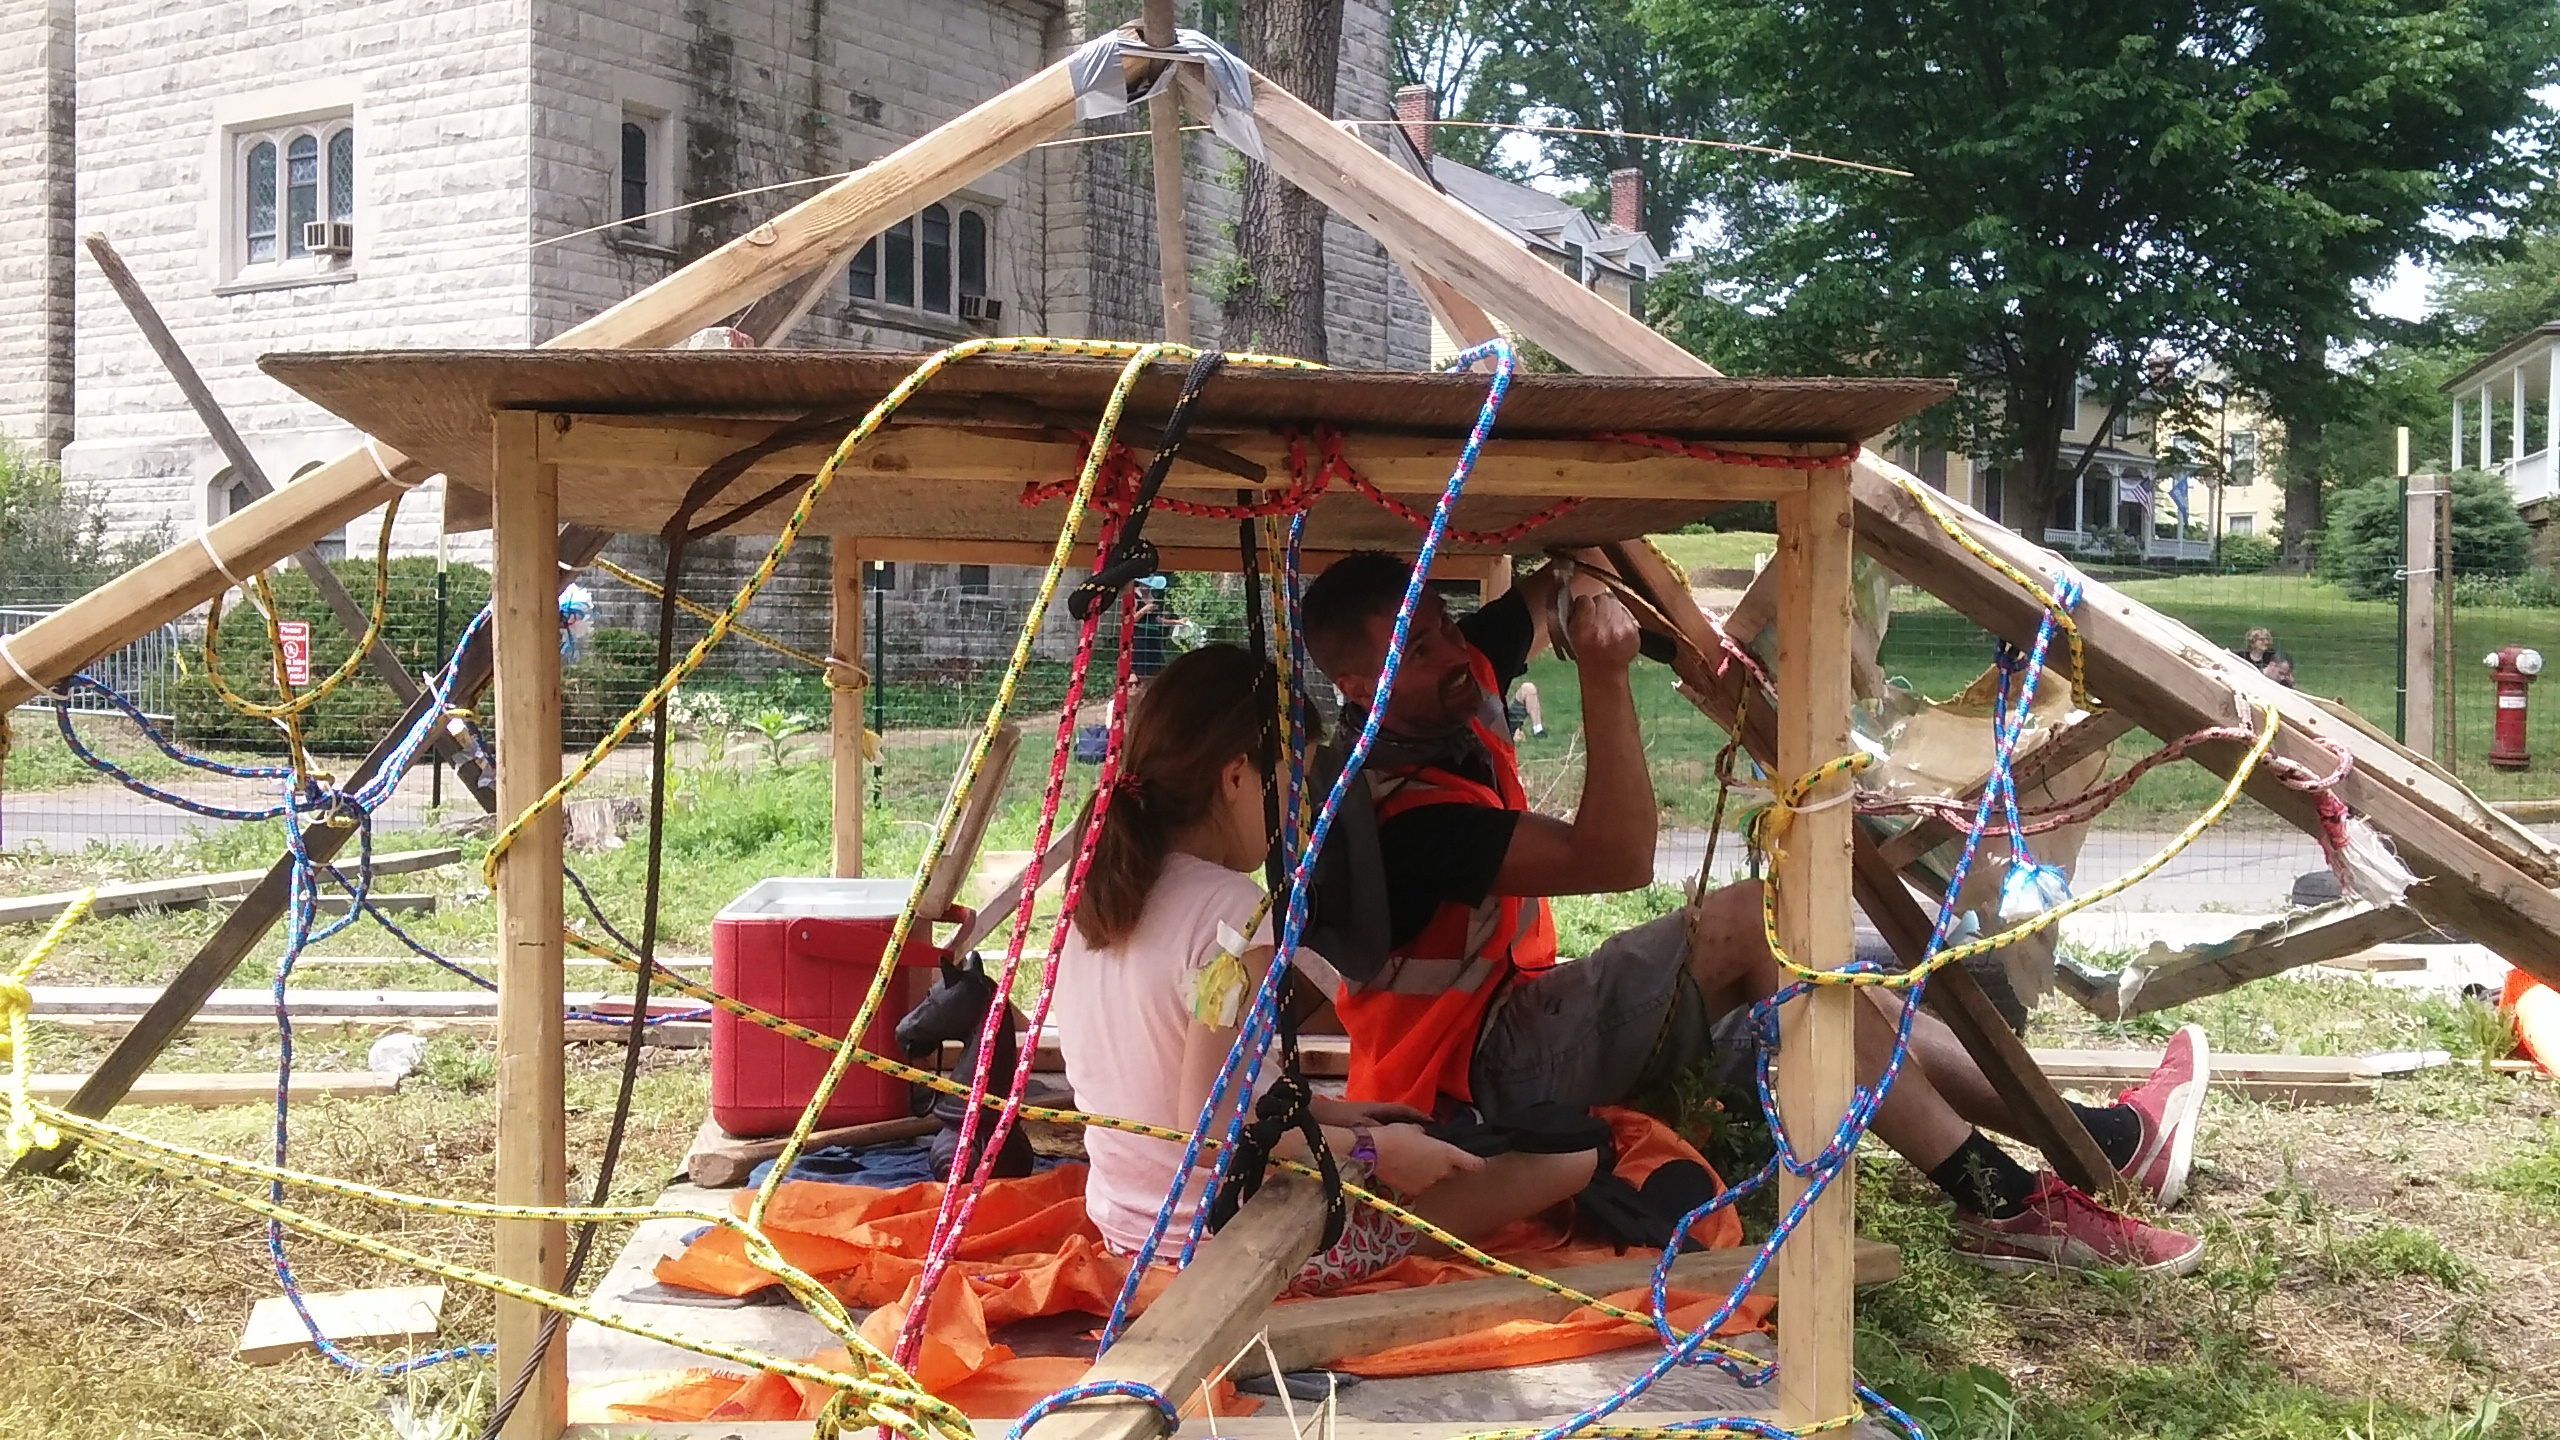 The Junk Playground Of New York City >> How The Us Is Embracing Adventure Playgrounds Child In The City